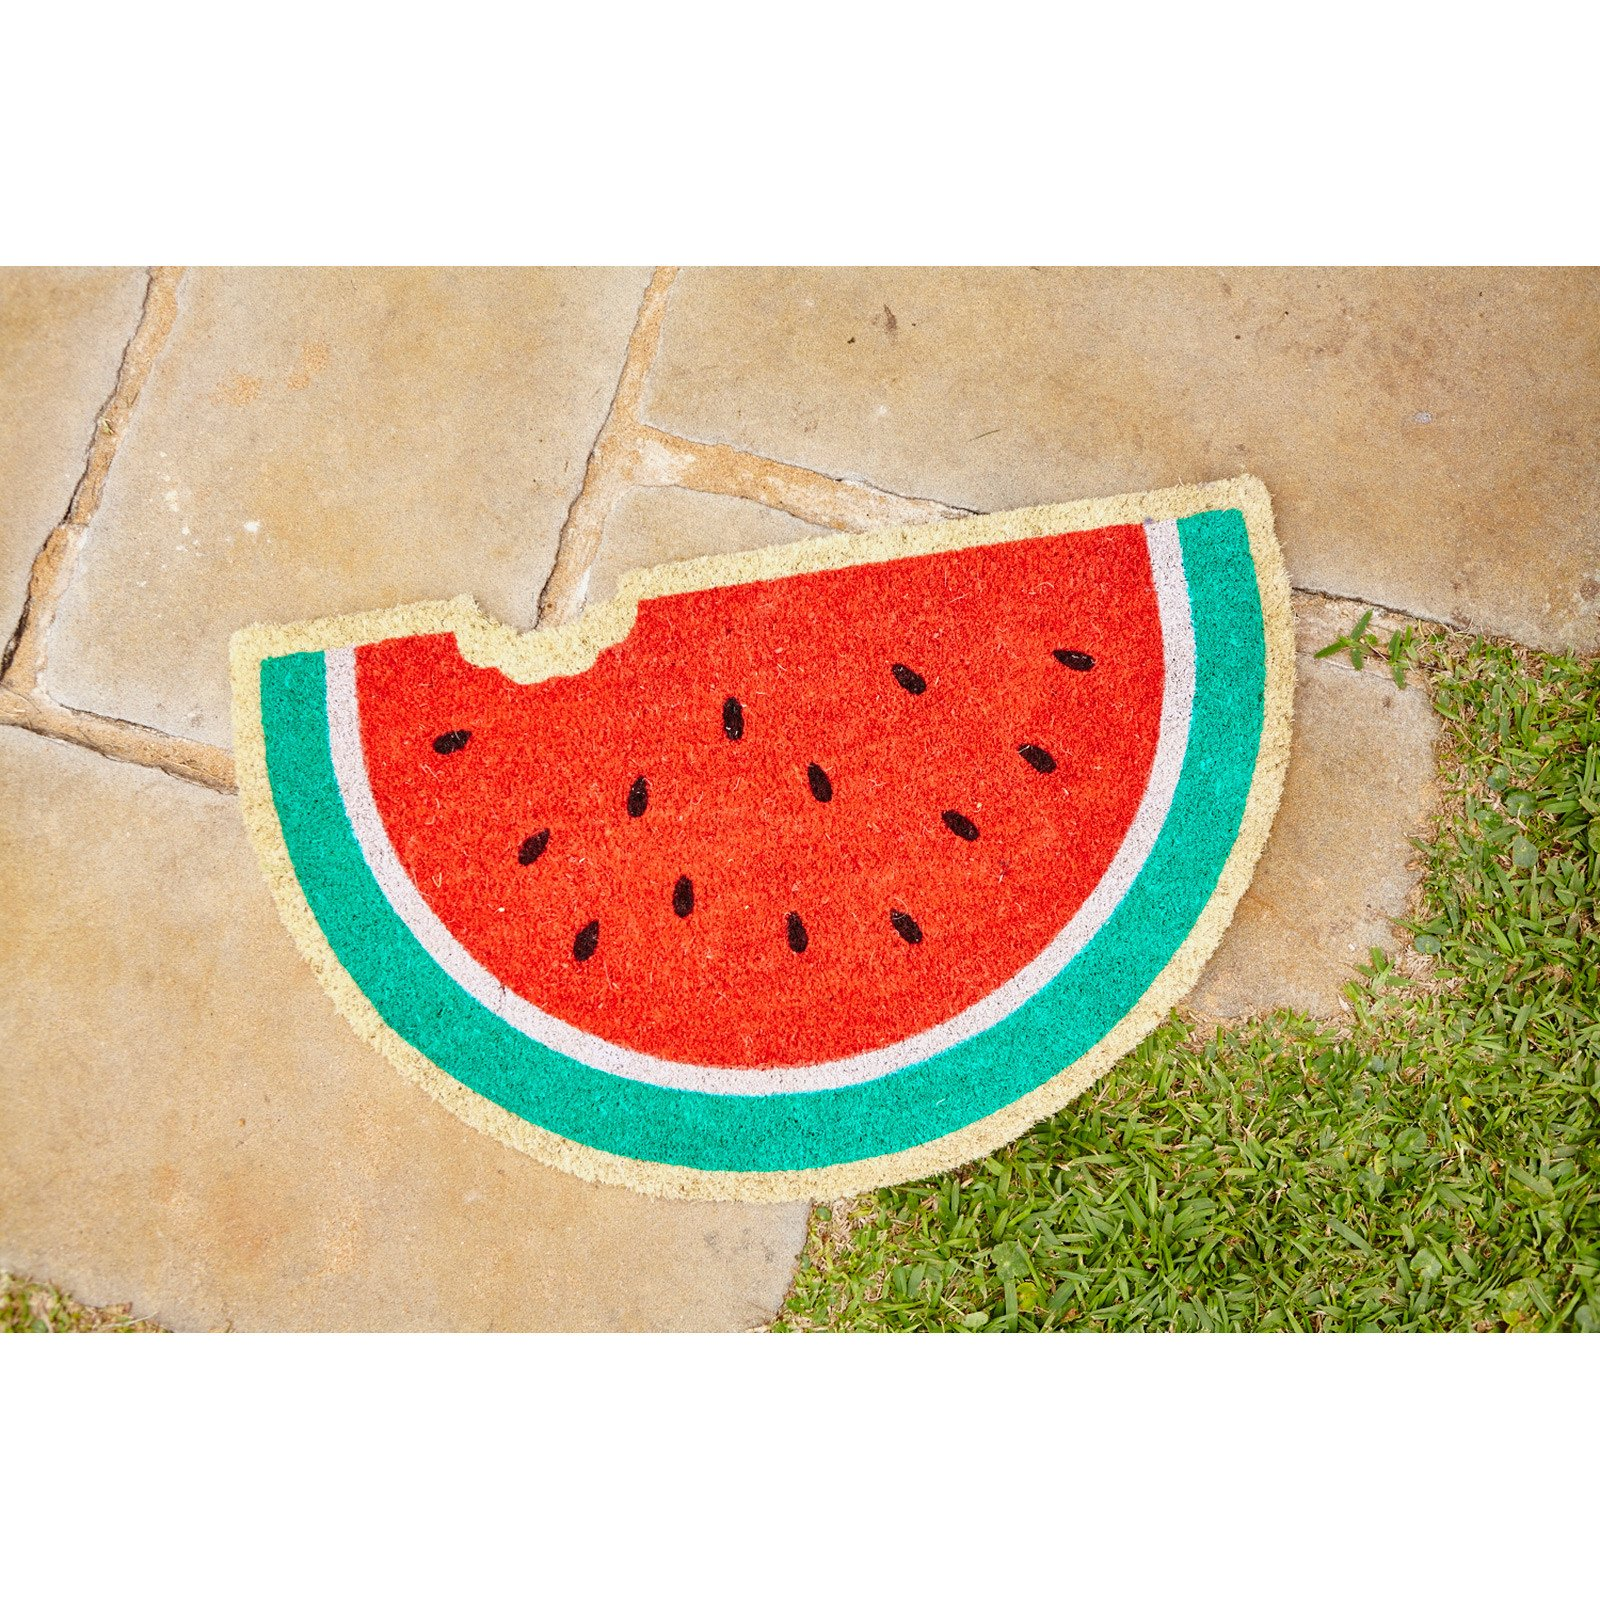 fussmatte wassermelonen scheibe watermelon doormat outdoor teppiche fu matten outdoor. Black Bedroom Furniture Sets. Home Design Ideas